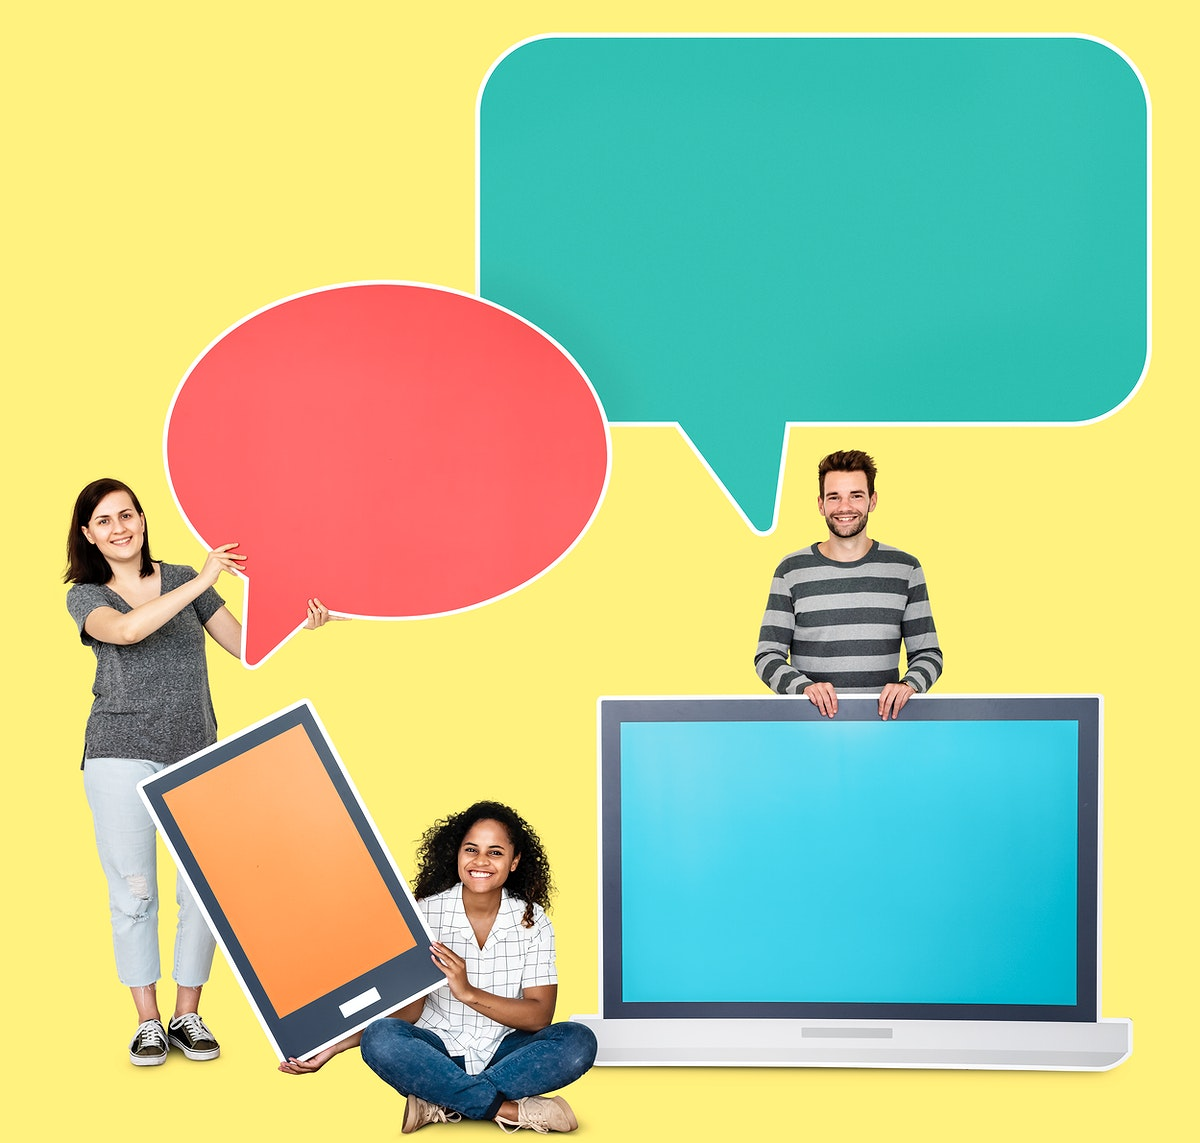 People with speech bubbles and digital device icons